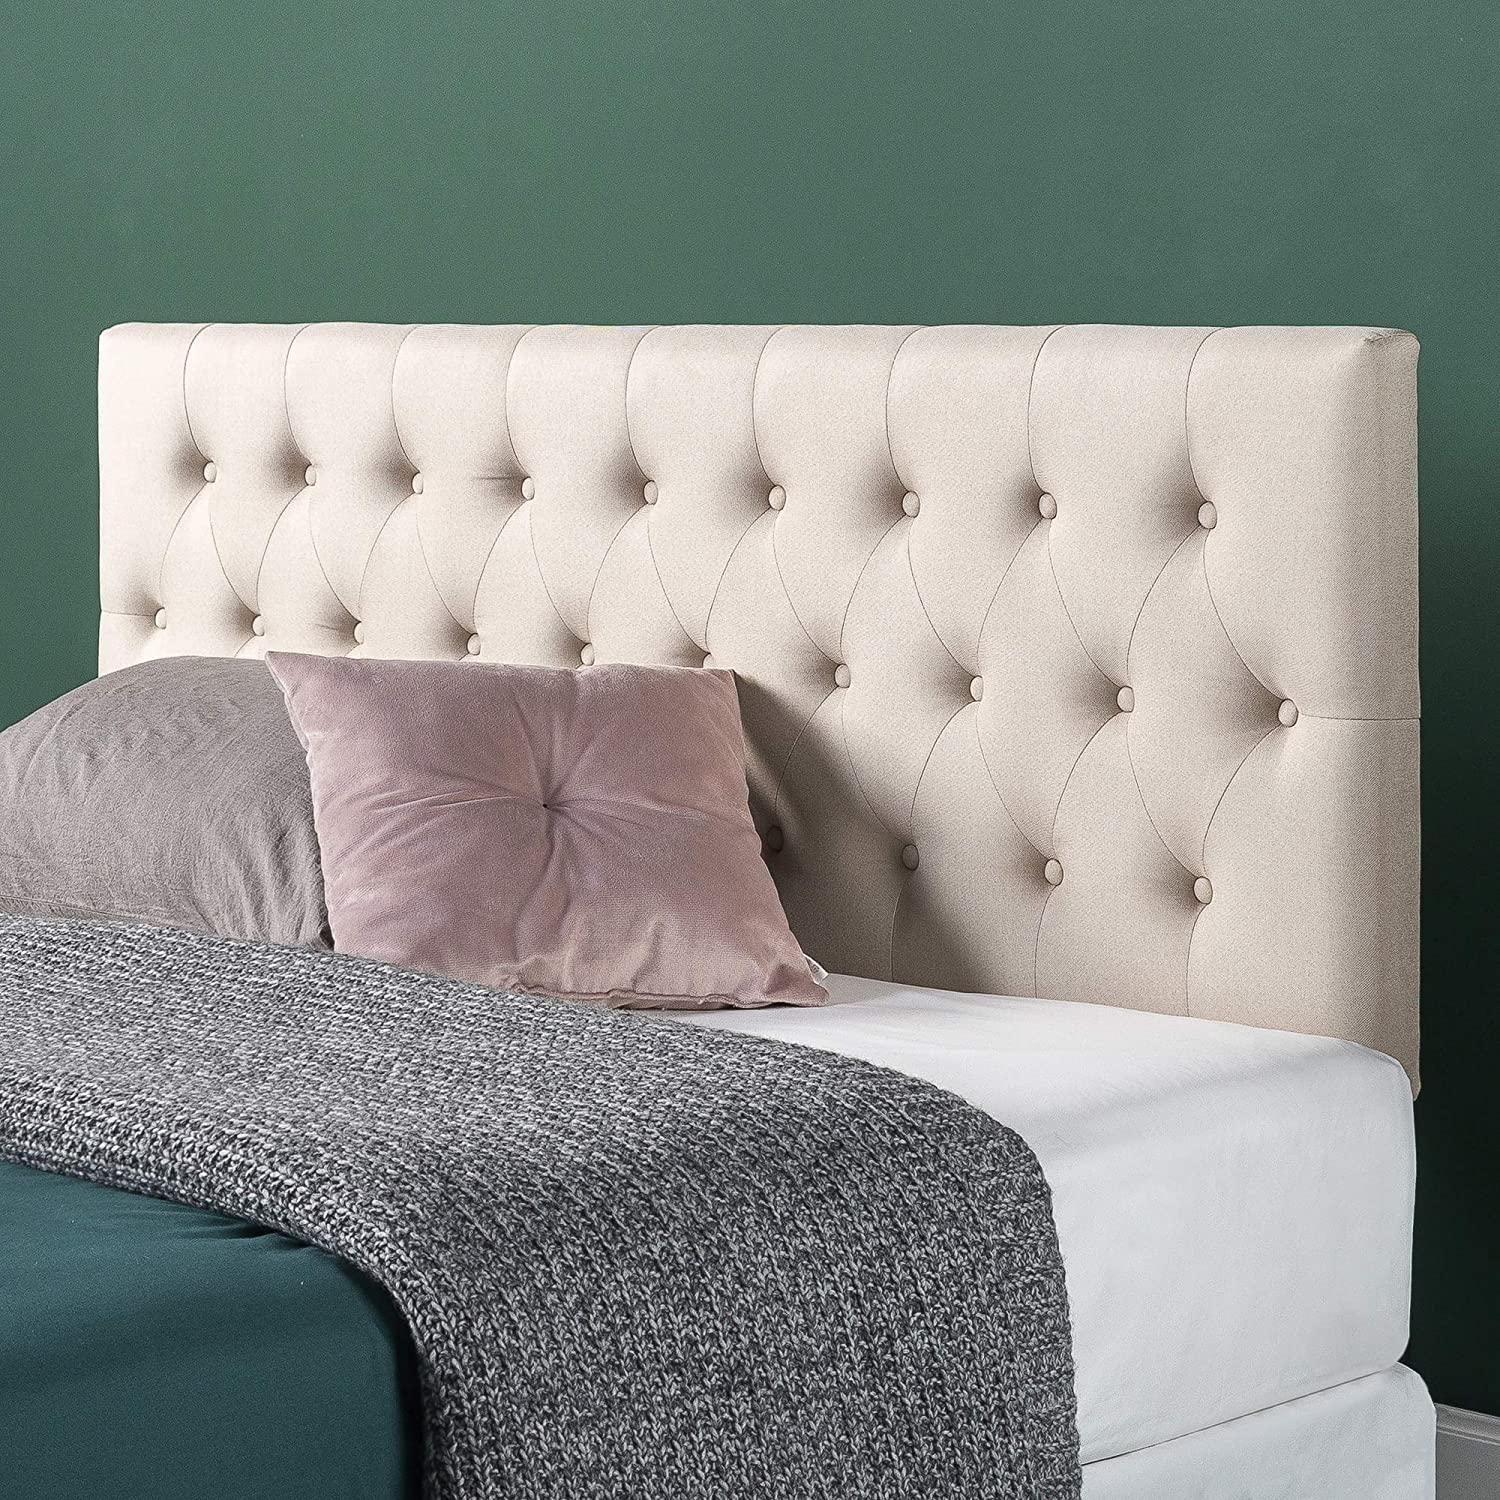 Best value for money headboard for adjustable bed: ZINUS Trina Upholstered Headboard